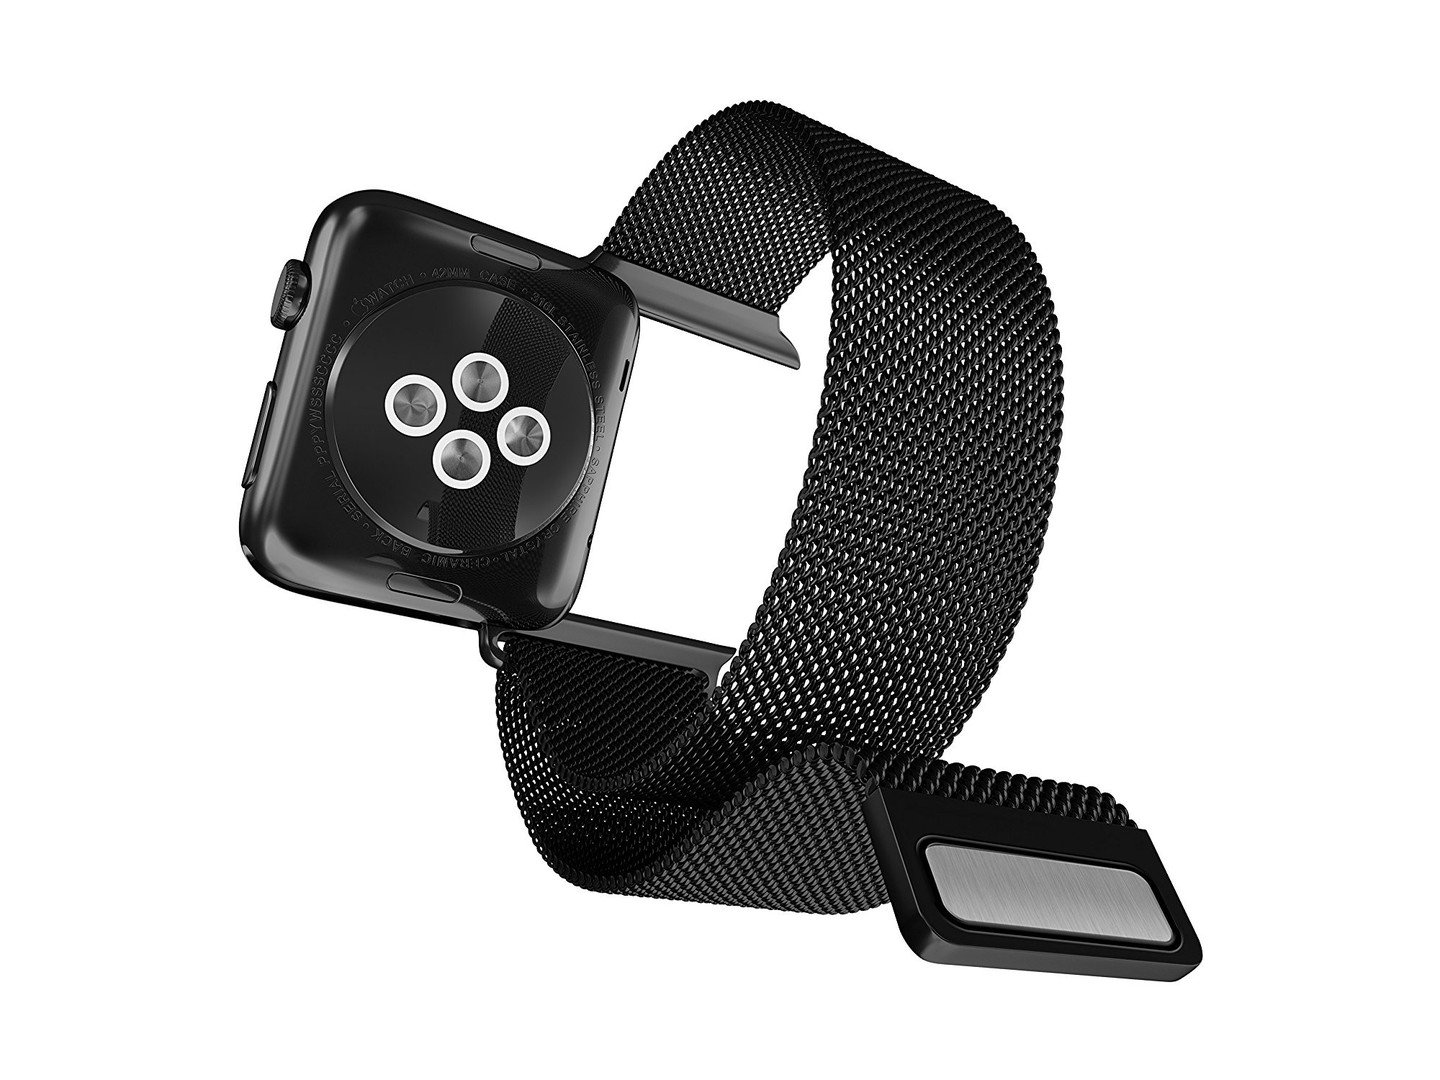 The X-Doria Mesh Band for Apple Watch Offers a Stylish Look for Less